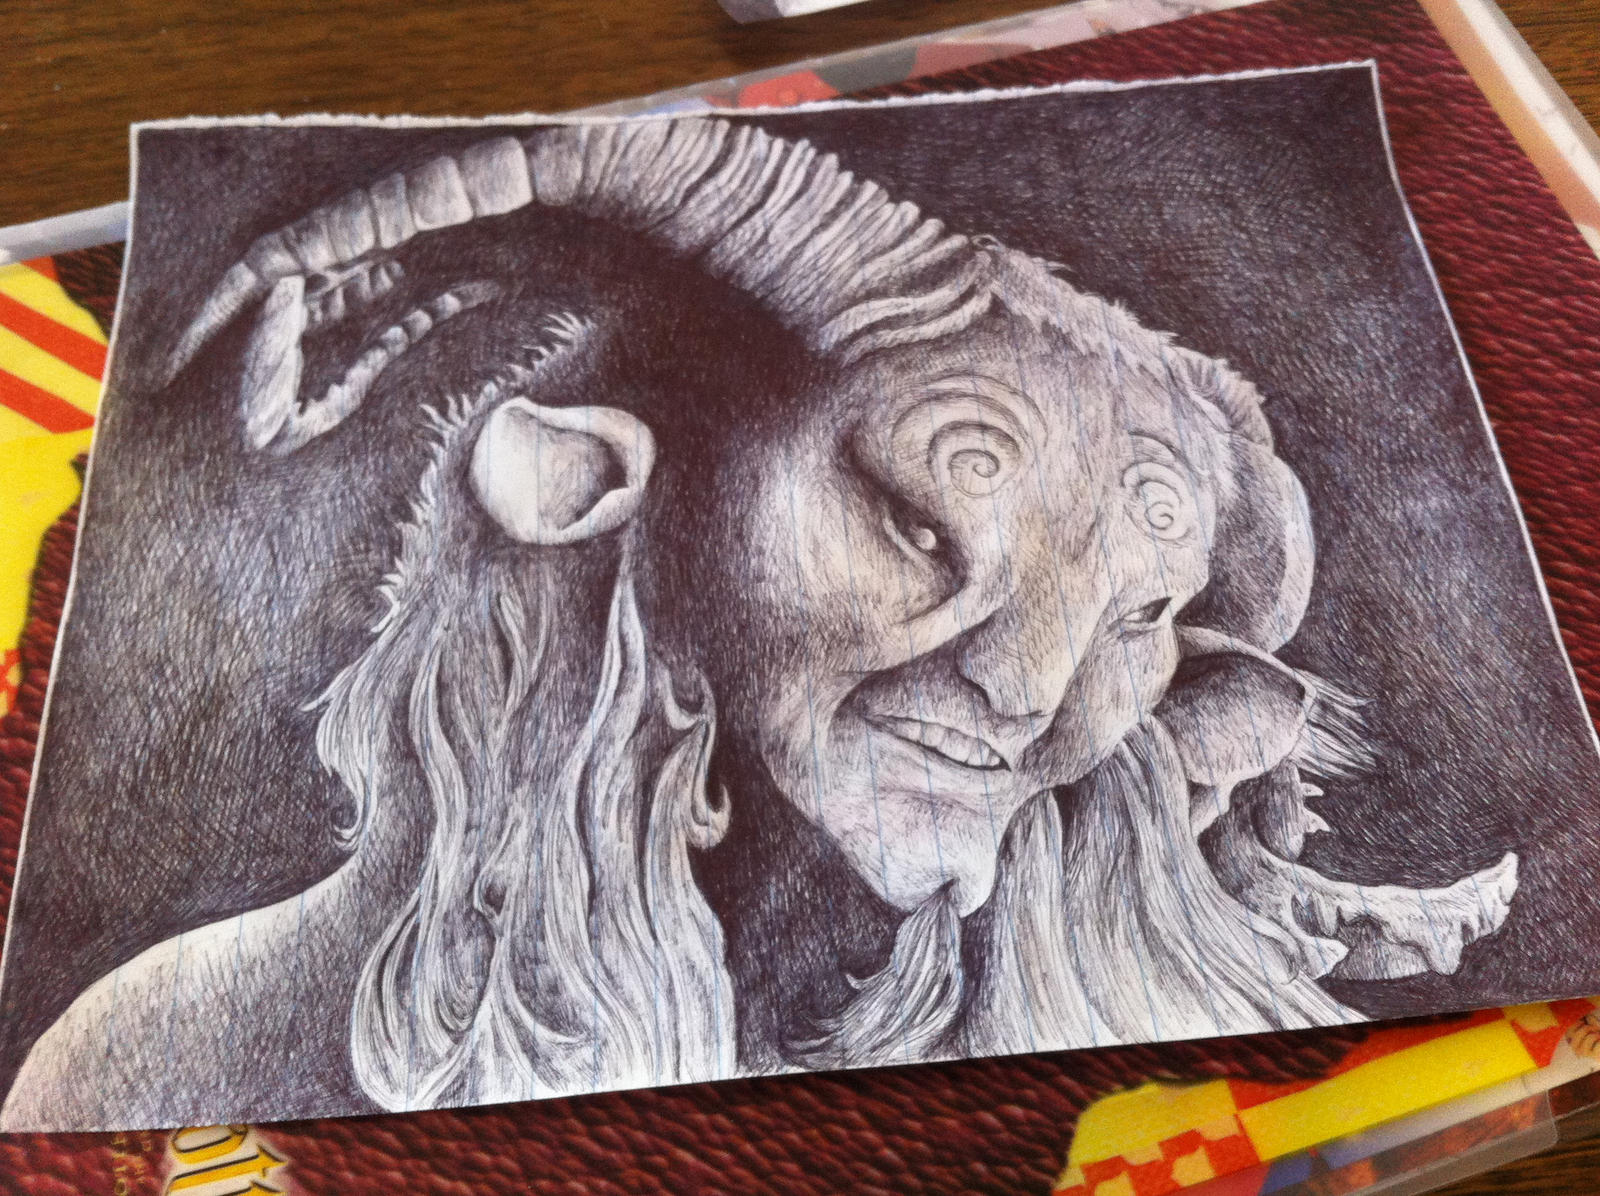 Pan's Labyrinth: The Faun by reedretnuh237 on DeviantArt